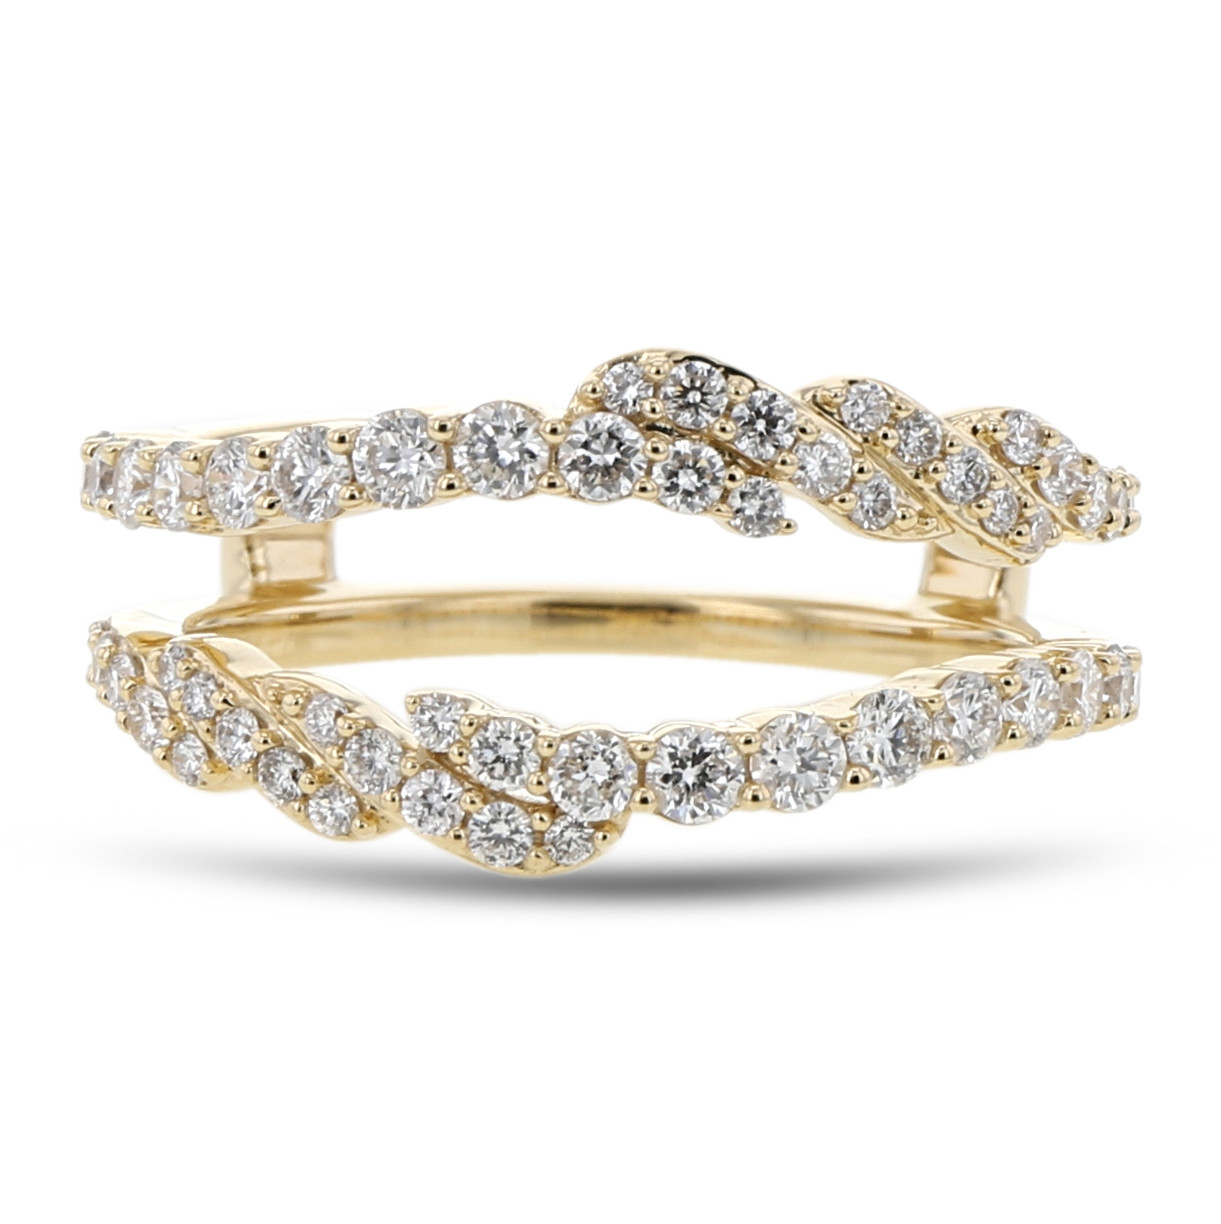 Diamond Cradle Wedding Band, Ring Enhancer, Pavé Waves, 14k Yellow Gold, (View 11 of 25)